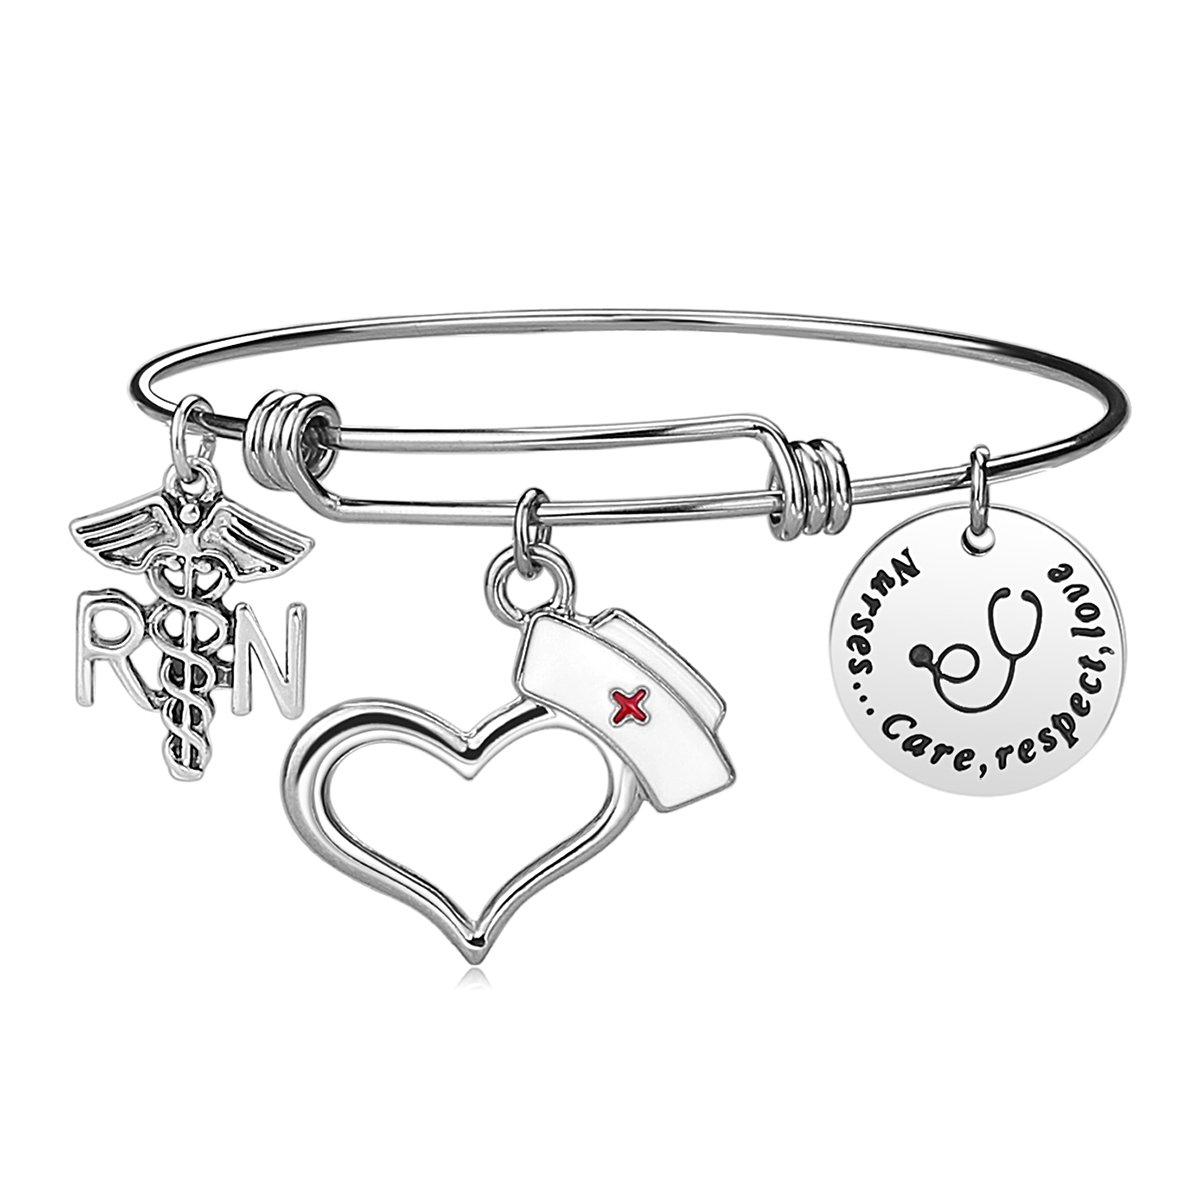 Nurse Bangle Bracelet Gifts